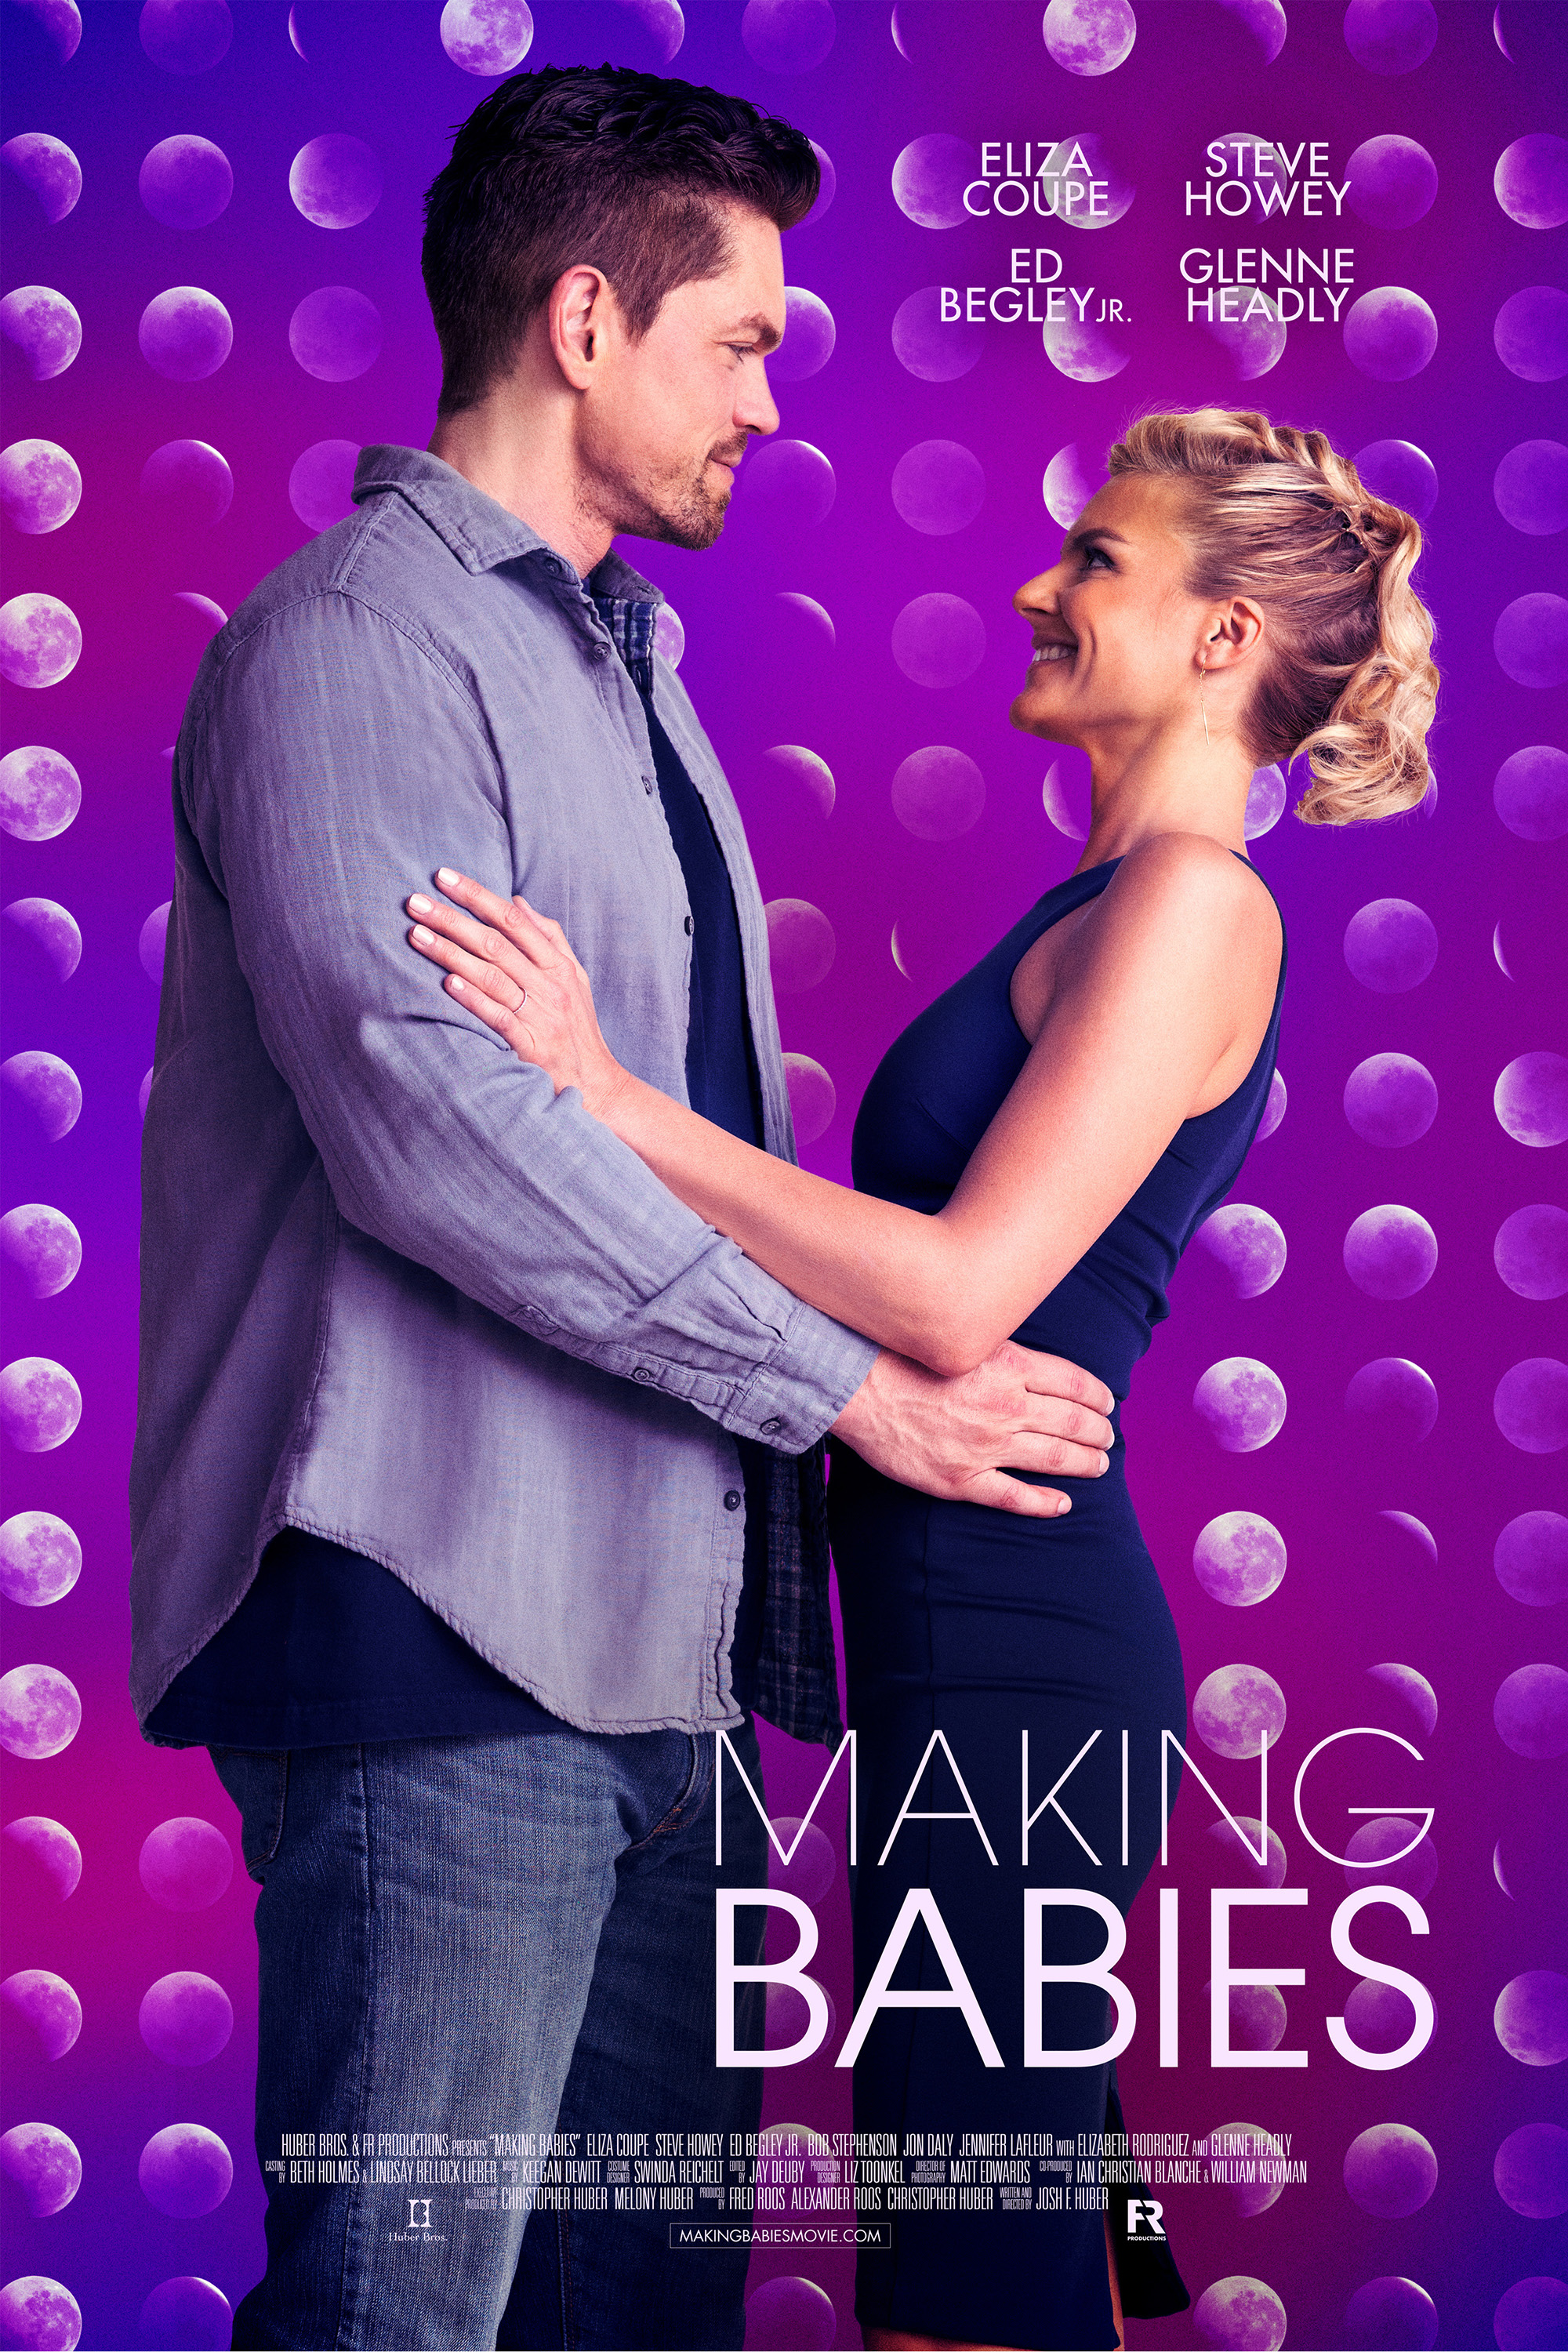 Steve Howey and Eliza Coupe in Making Babies (2018)